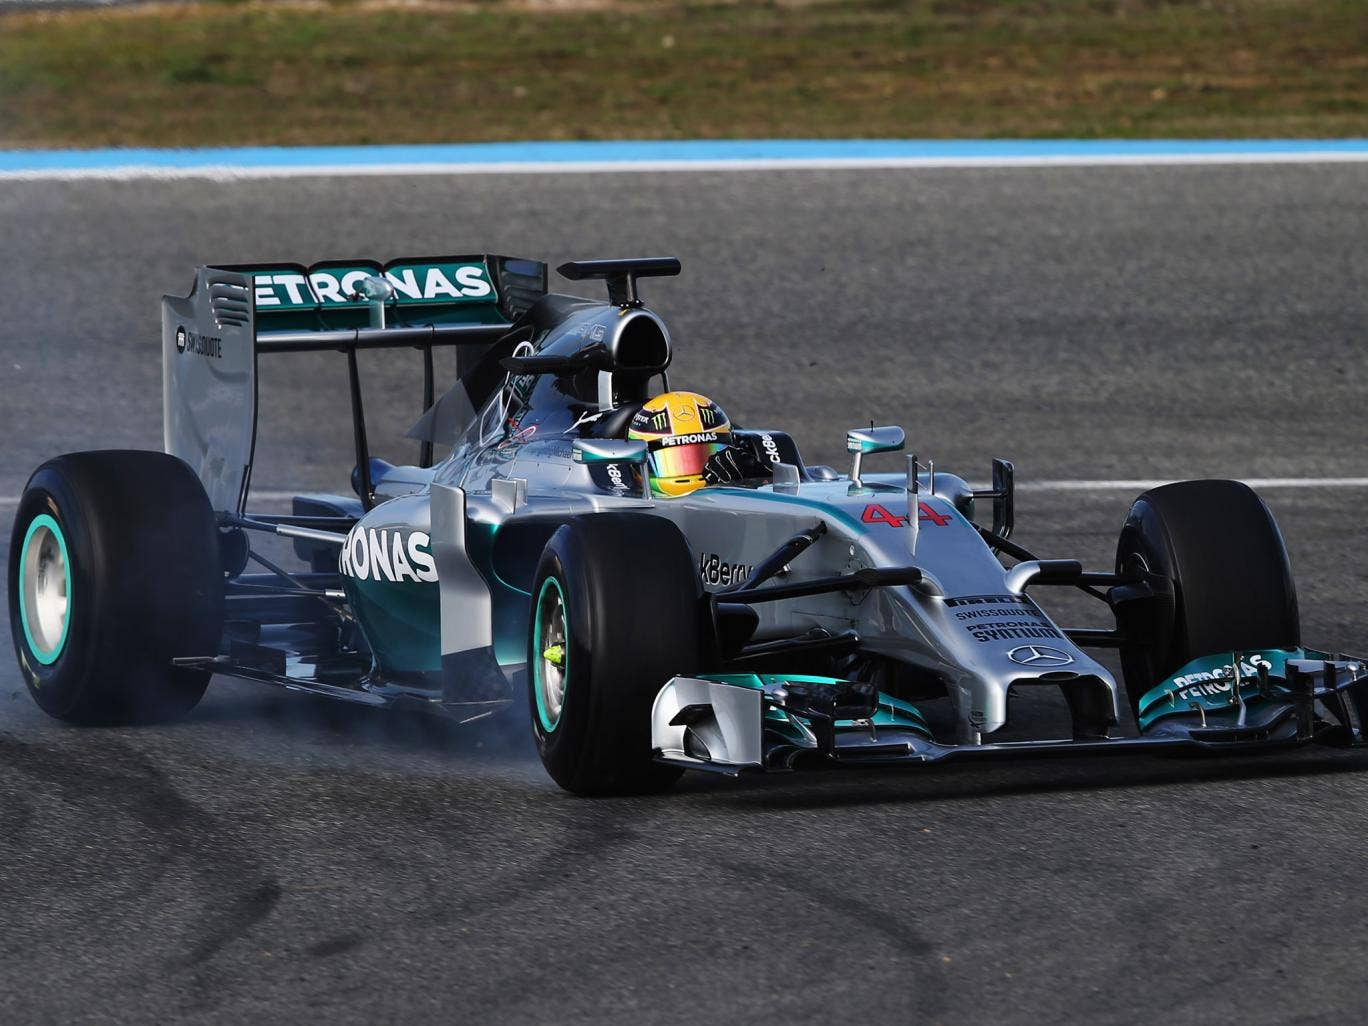 Lewis Hamilton suffered a front wing failure on the first day of testing in Jerez that caused him to plow into the tyre barrier